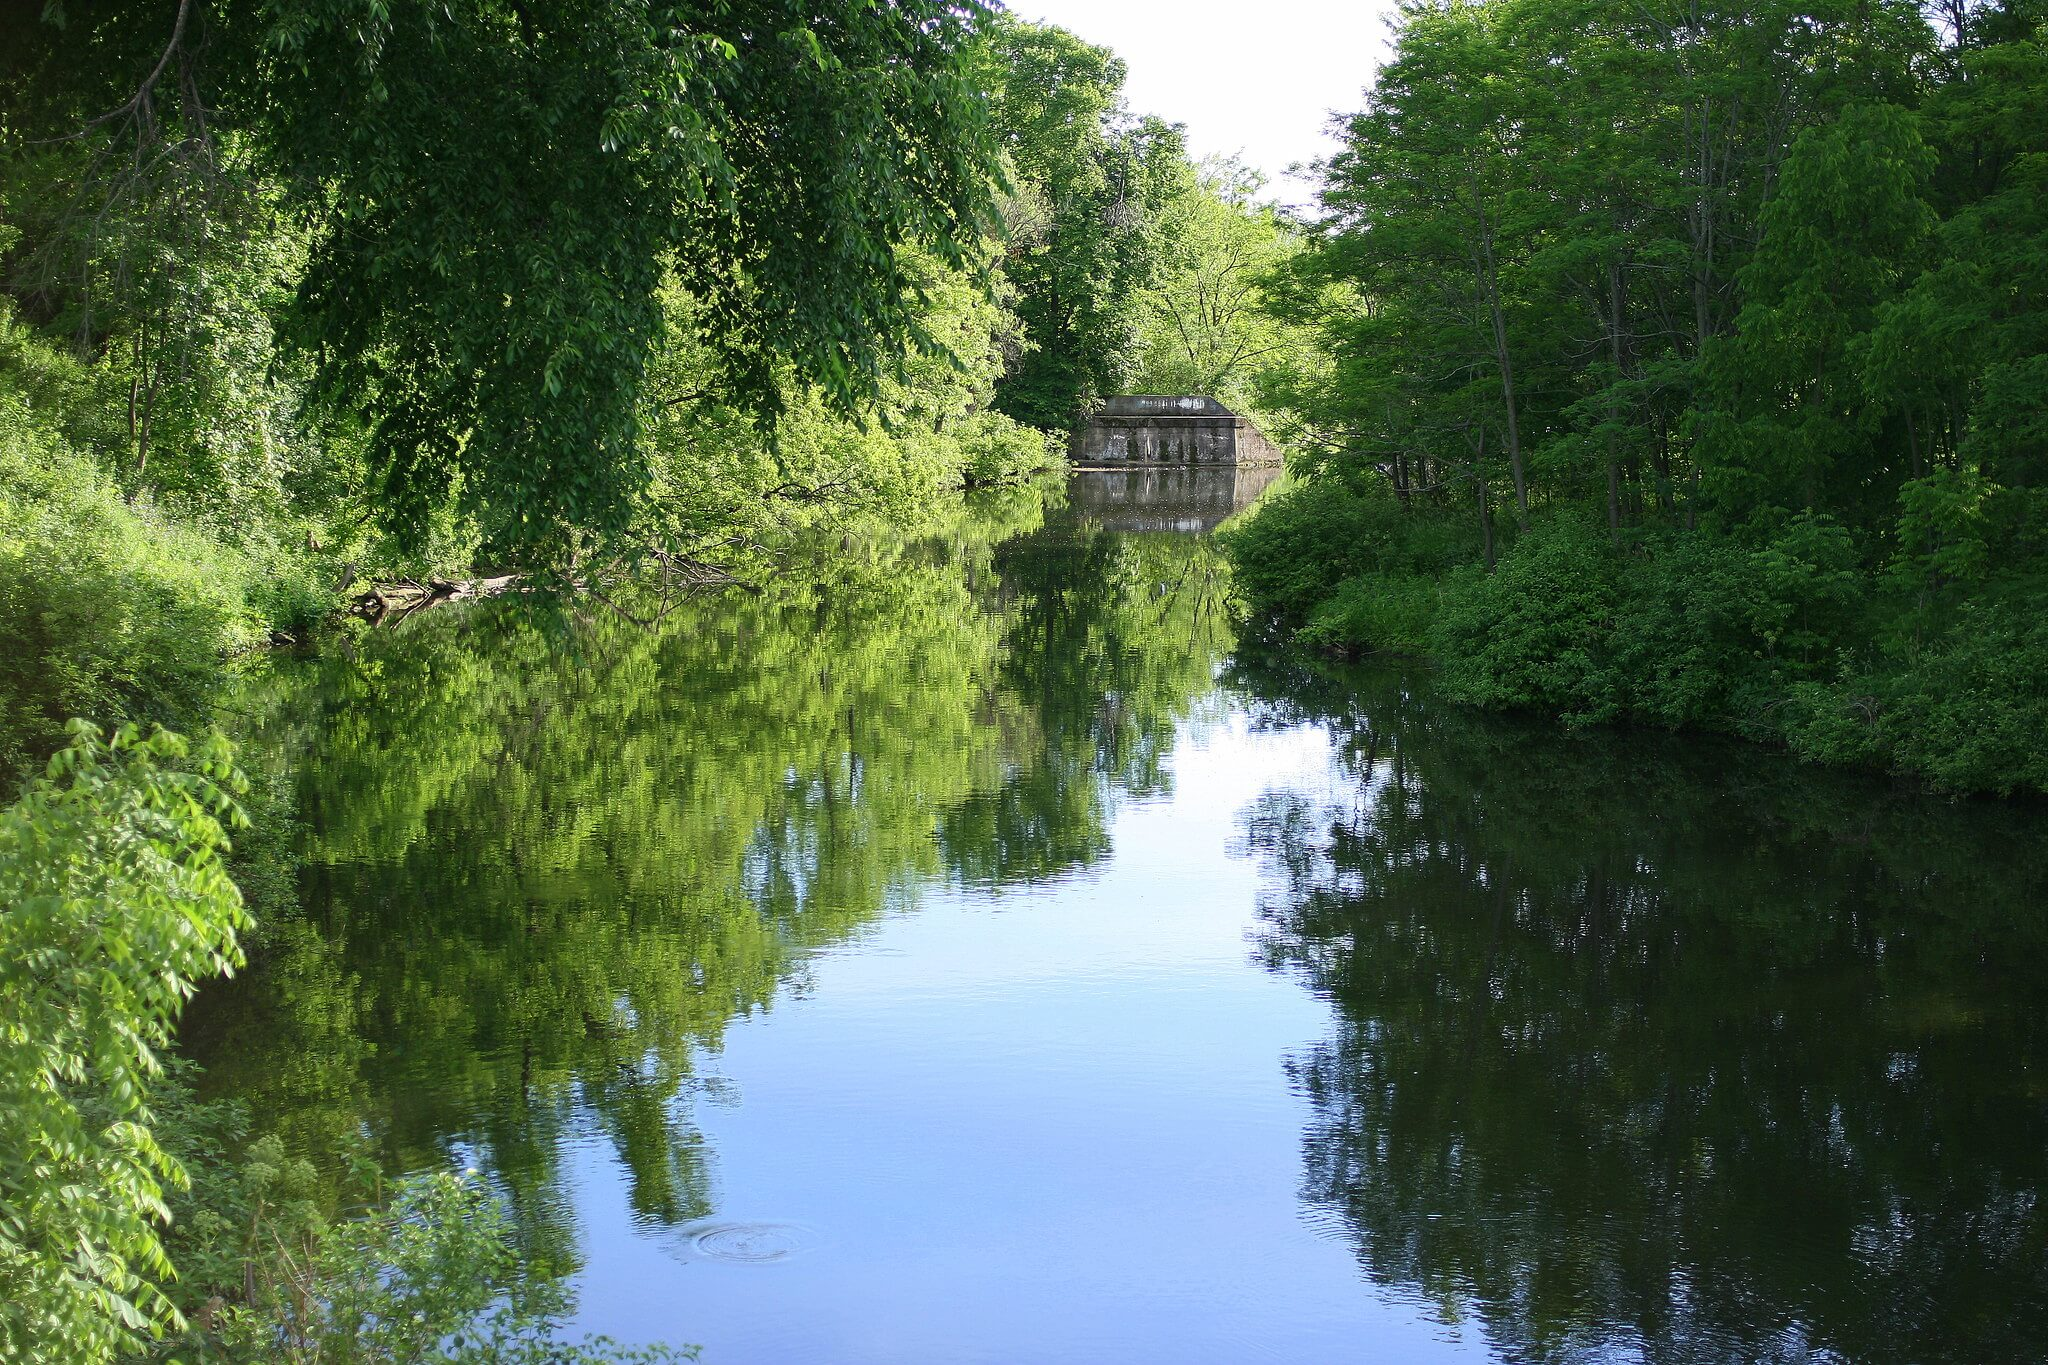 The Kinnickinnic River, where 40 acres of forest were recently conserved thanks to the Knowles-Nelson Stewardship Fund.